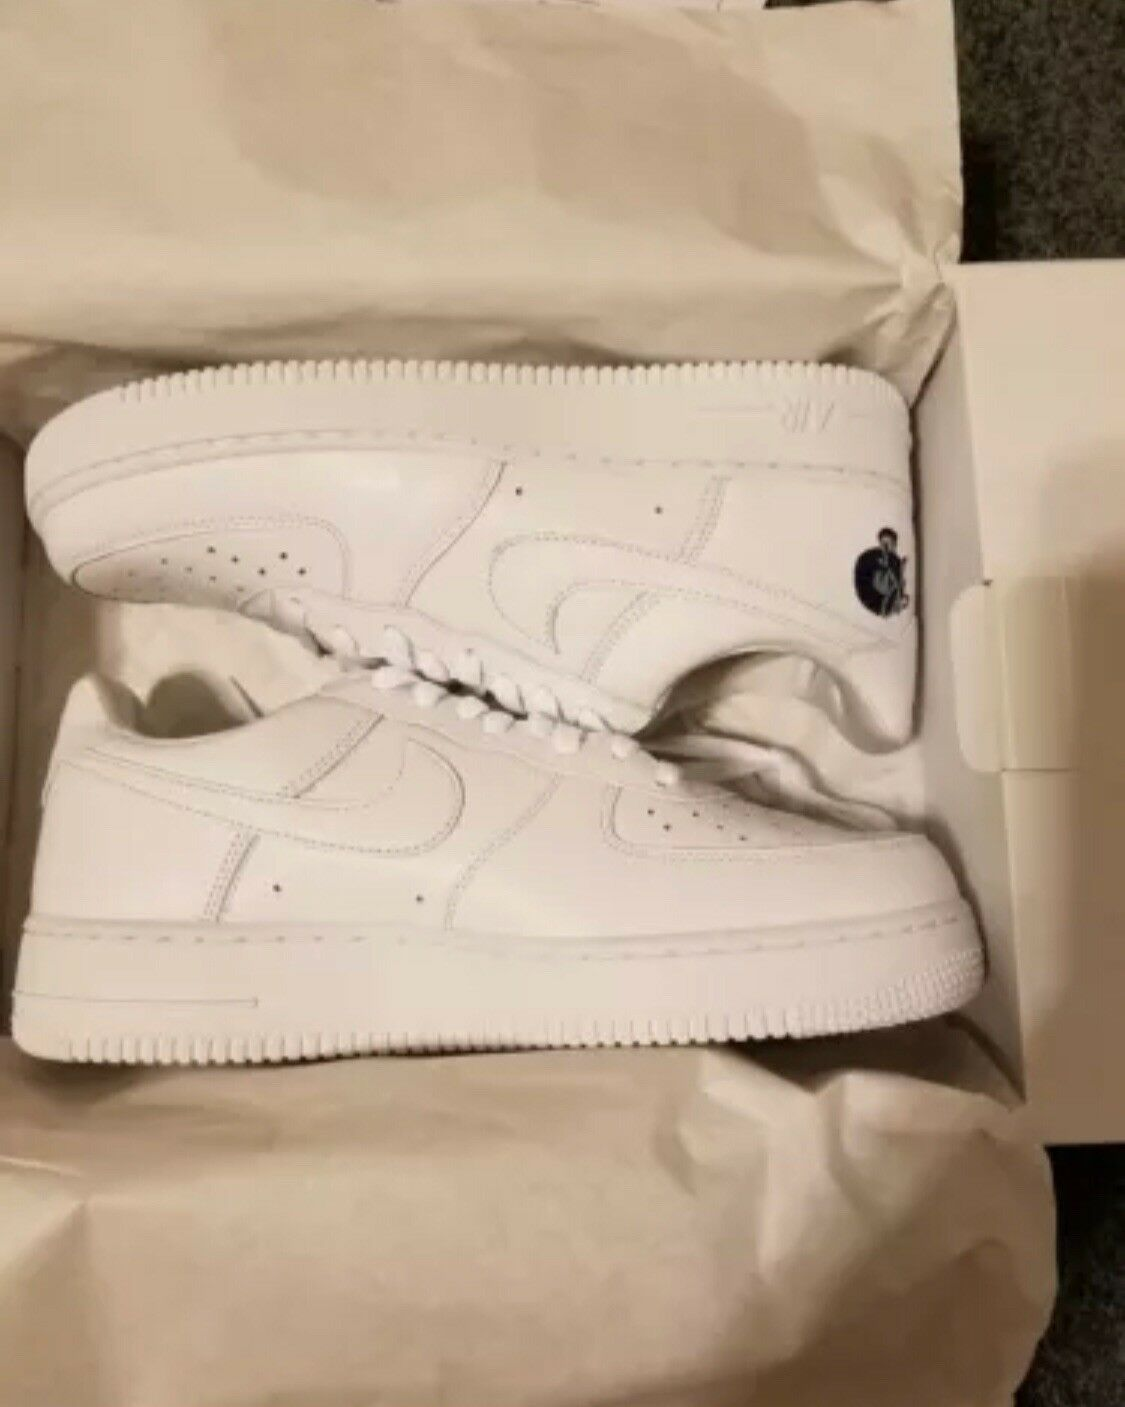 Nike Air Force 1 Low '07 ROCAFELLA White AO170 101 AF1 Uptown Roc-A-fella Price reduction Brand discount